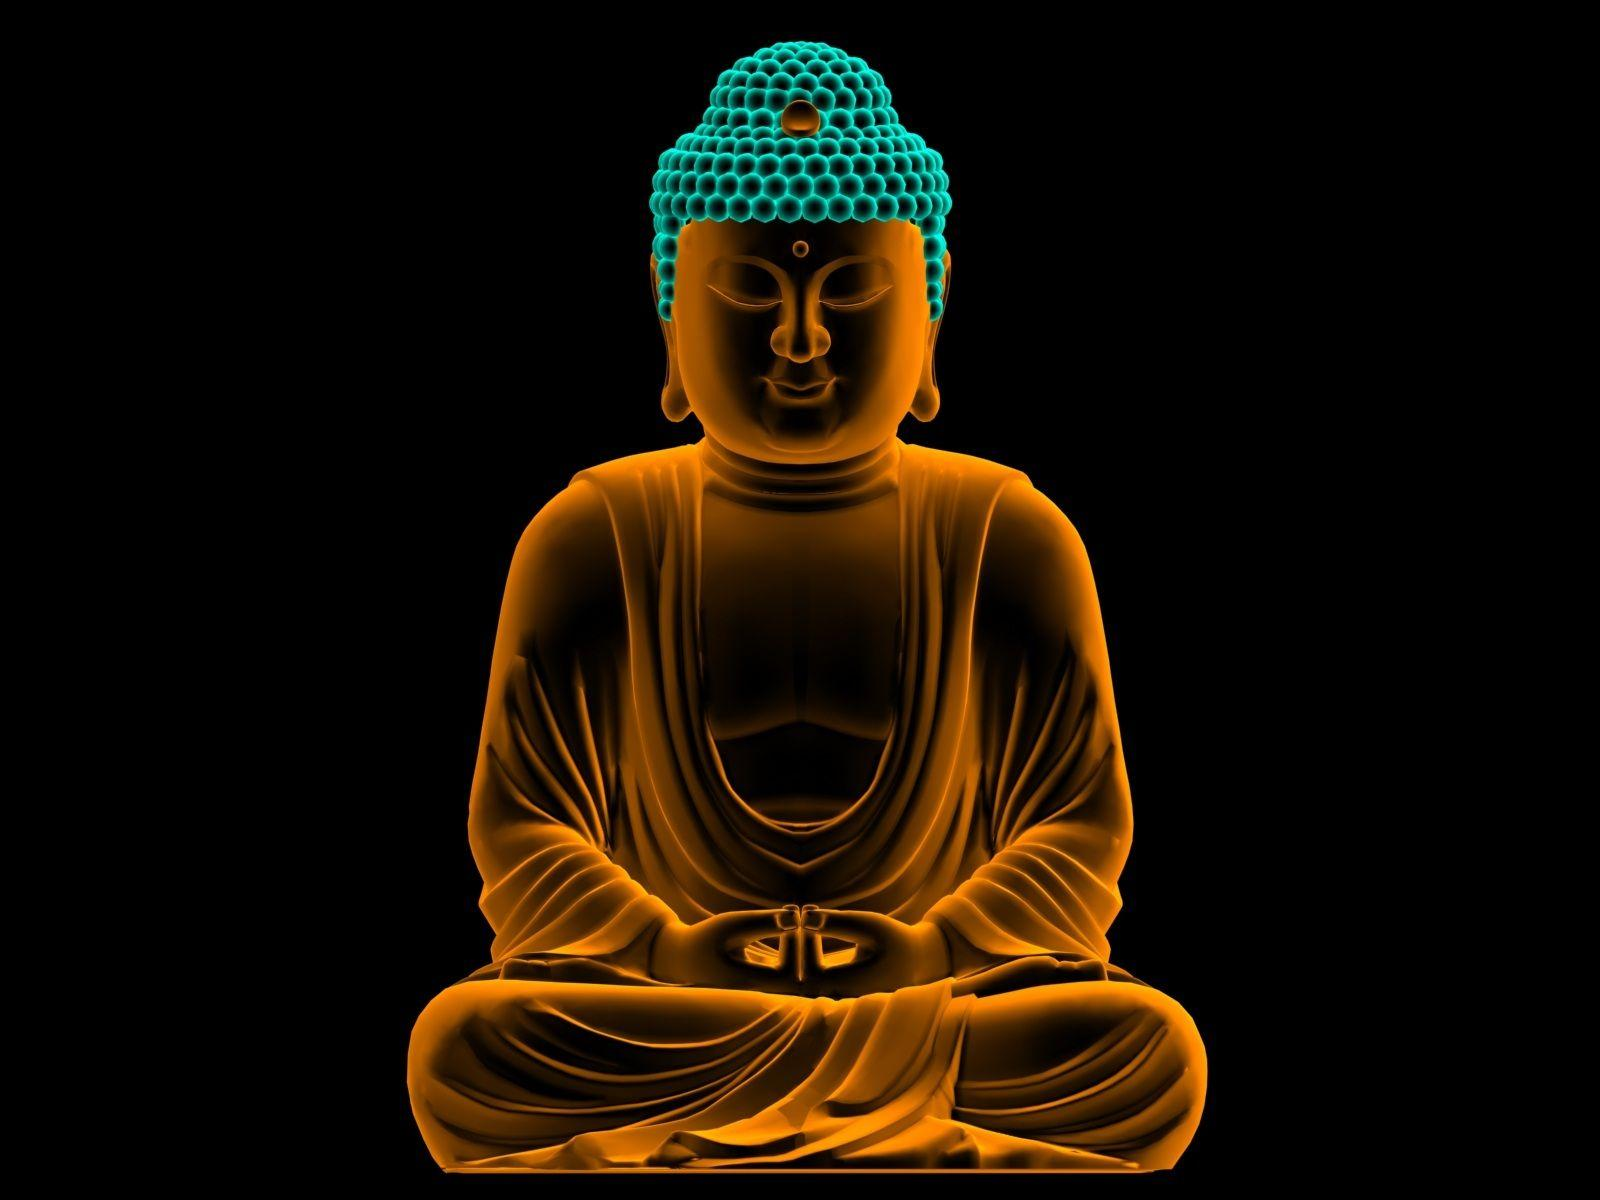 Buddha Hd Wallpapers Wallpaper Cave